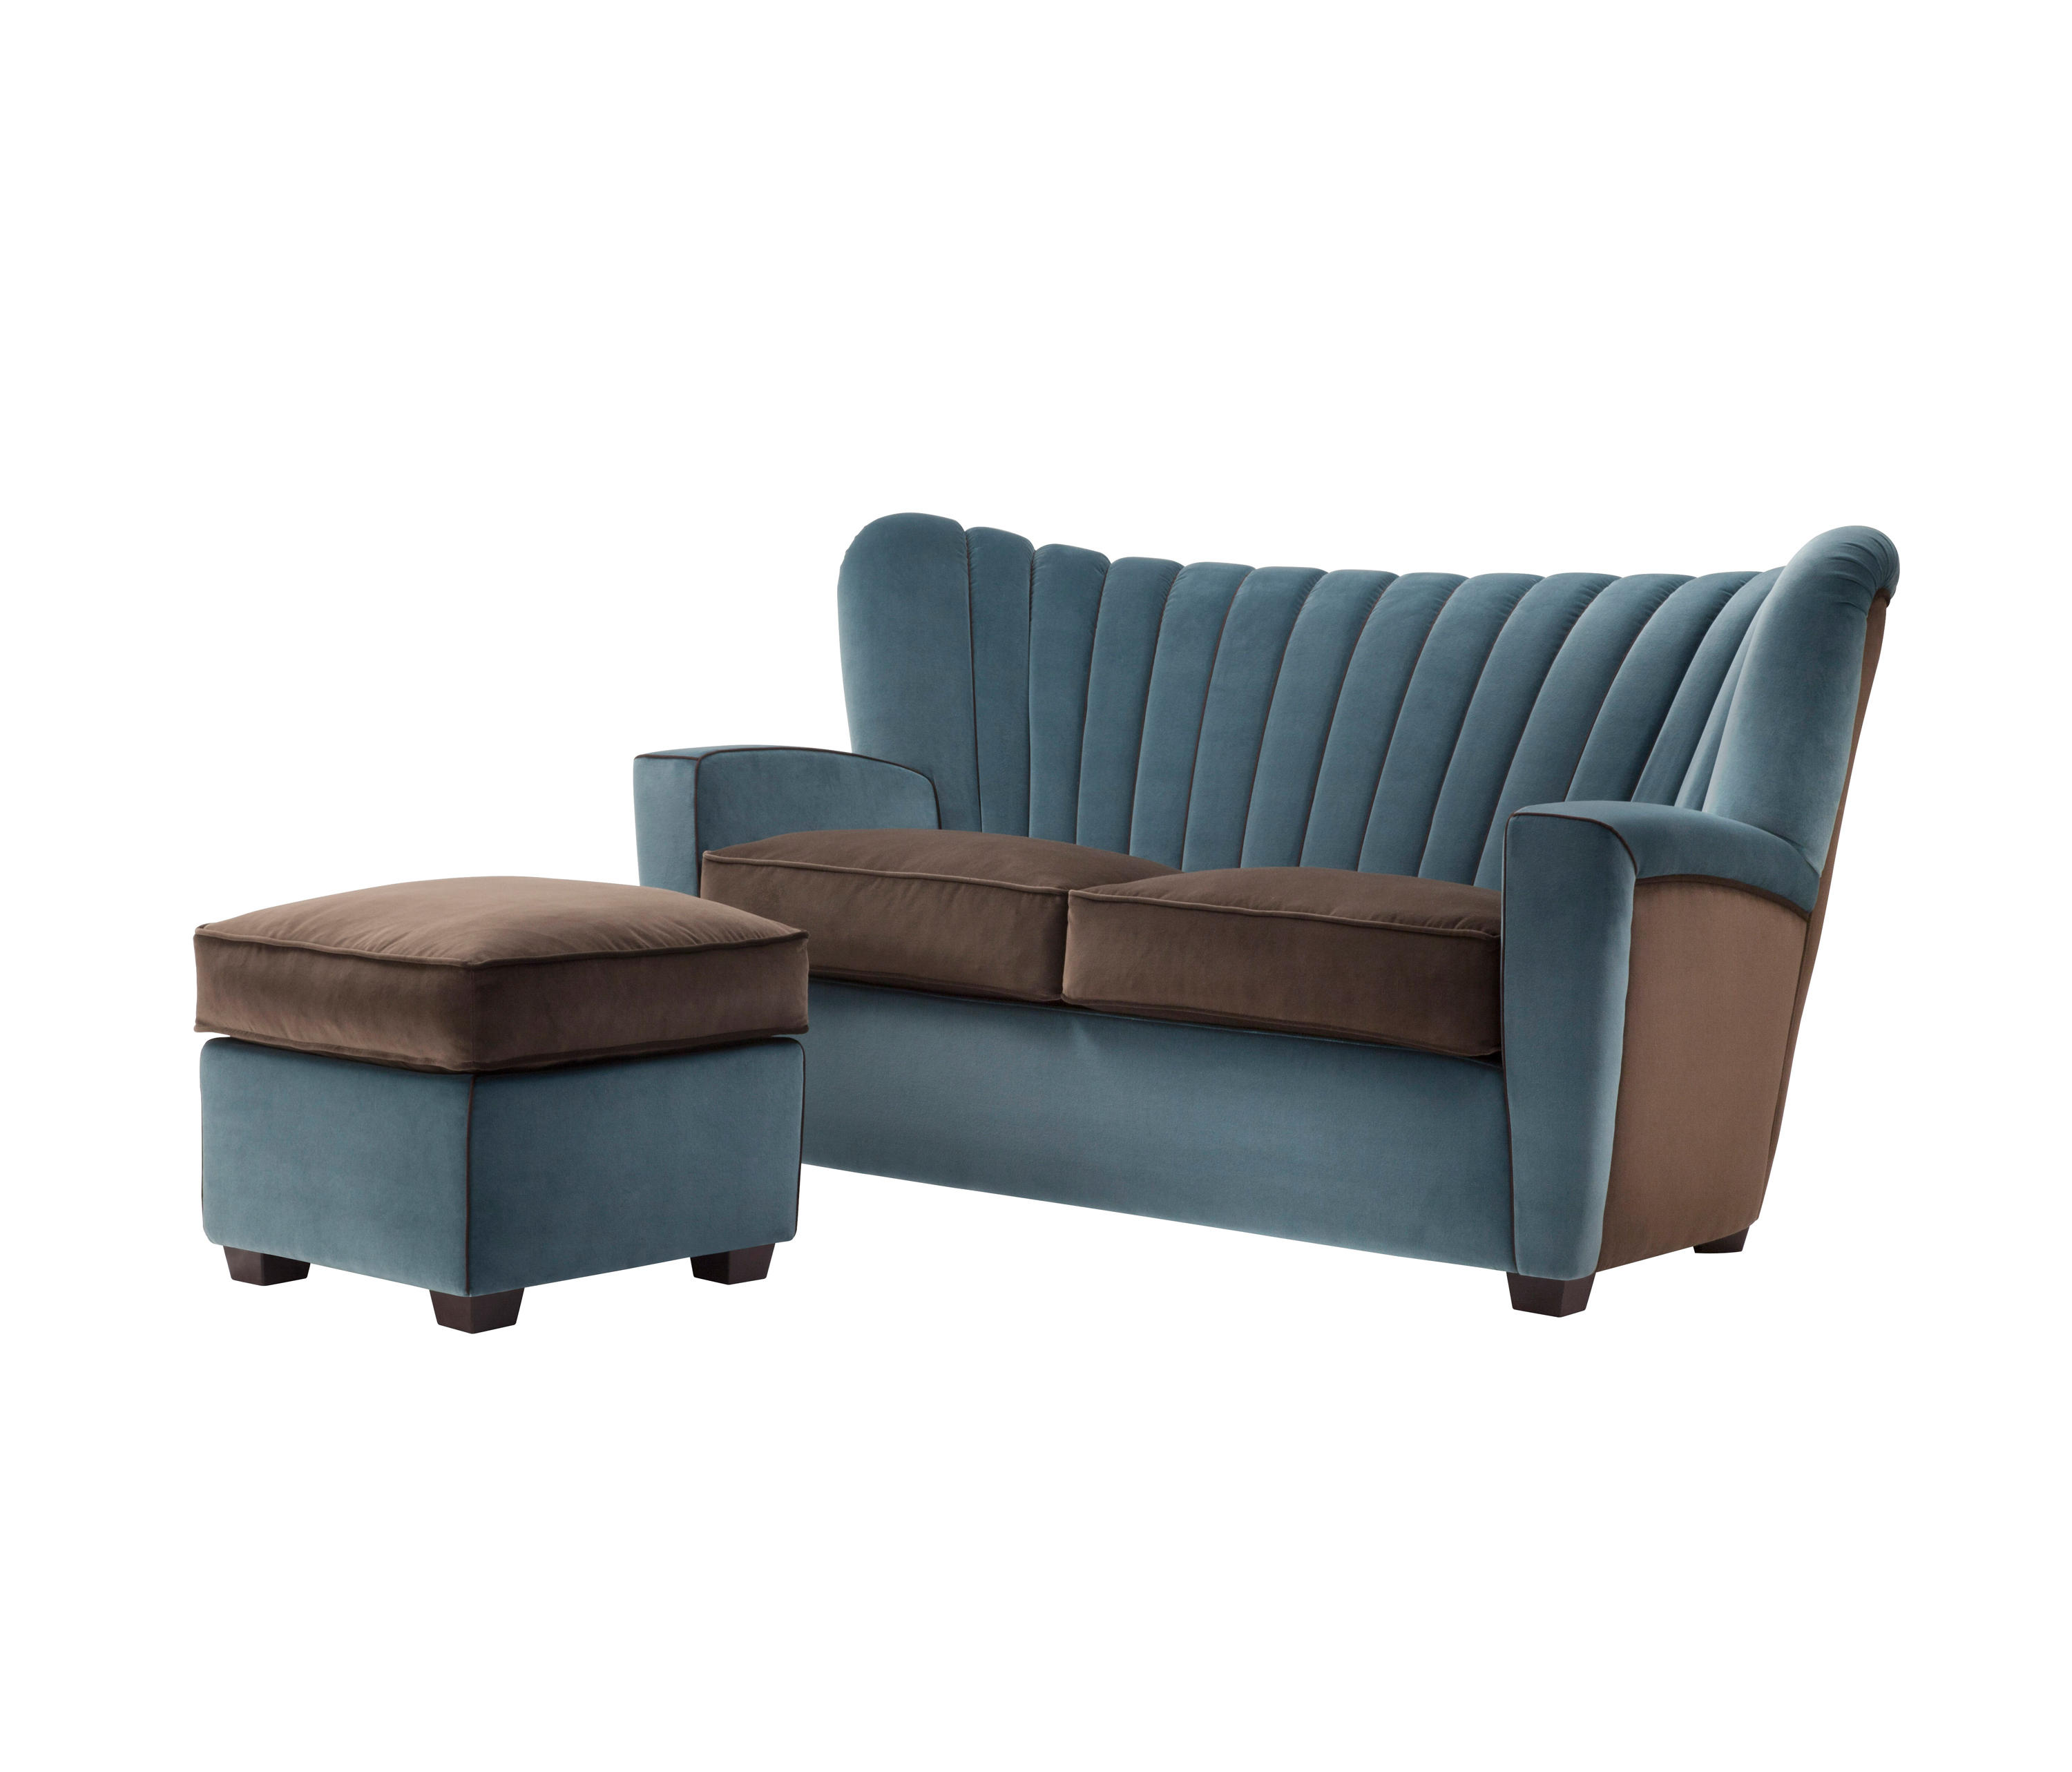 ... Zarina Sofa By Adele C | Lounge Sofas